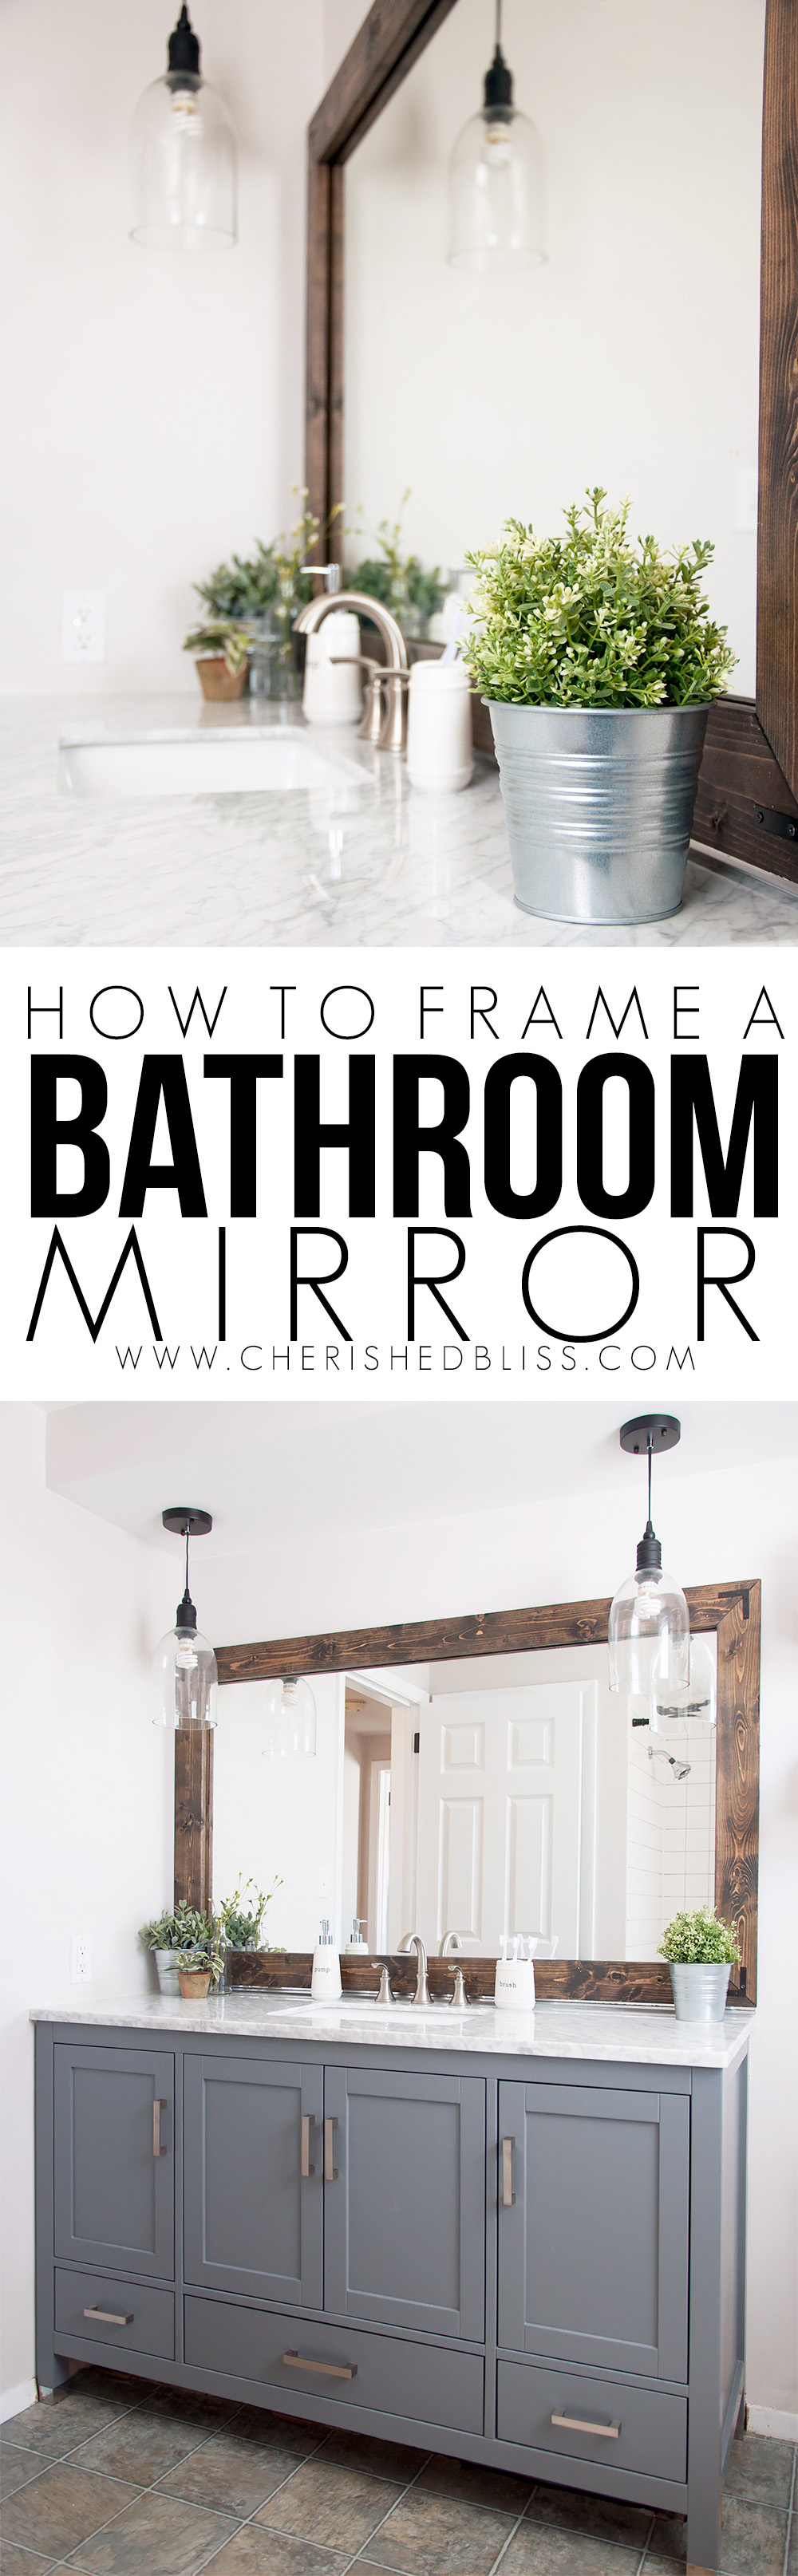 How to Frame a Bathroom Mirror – Cute DIY Projects